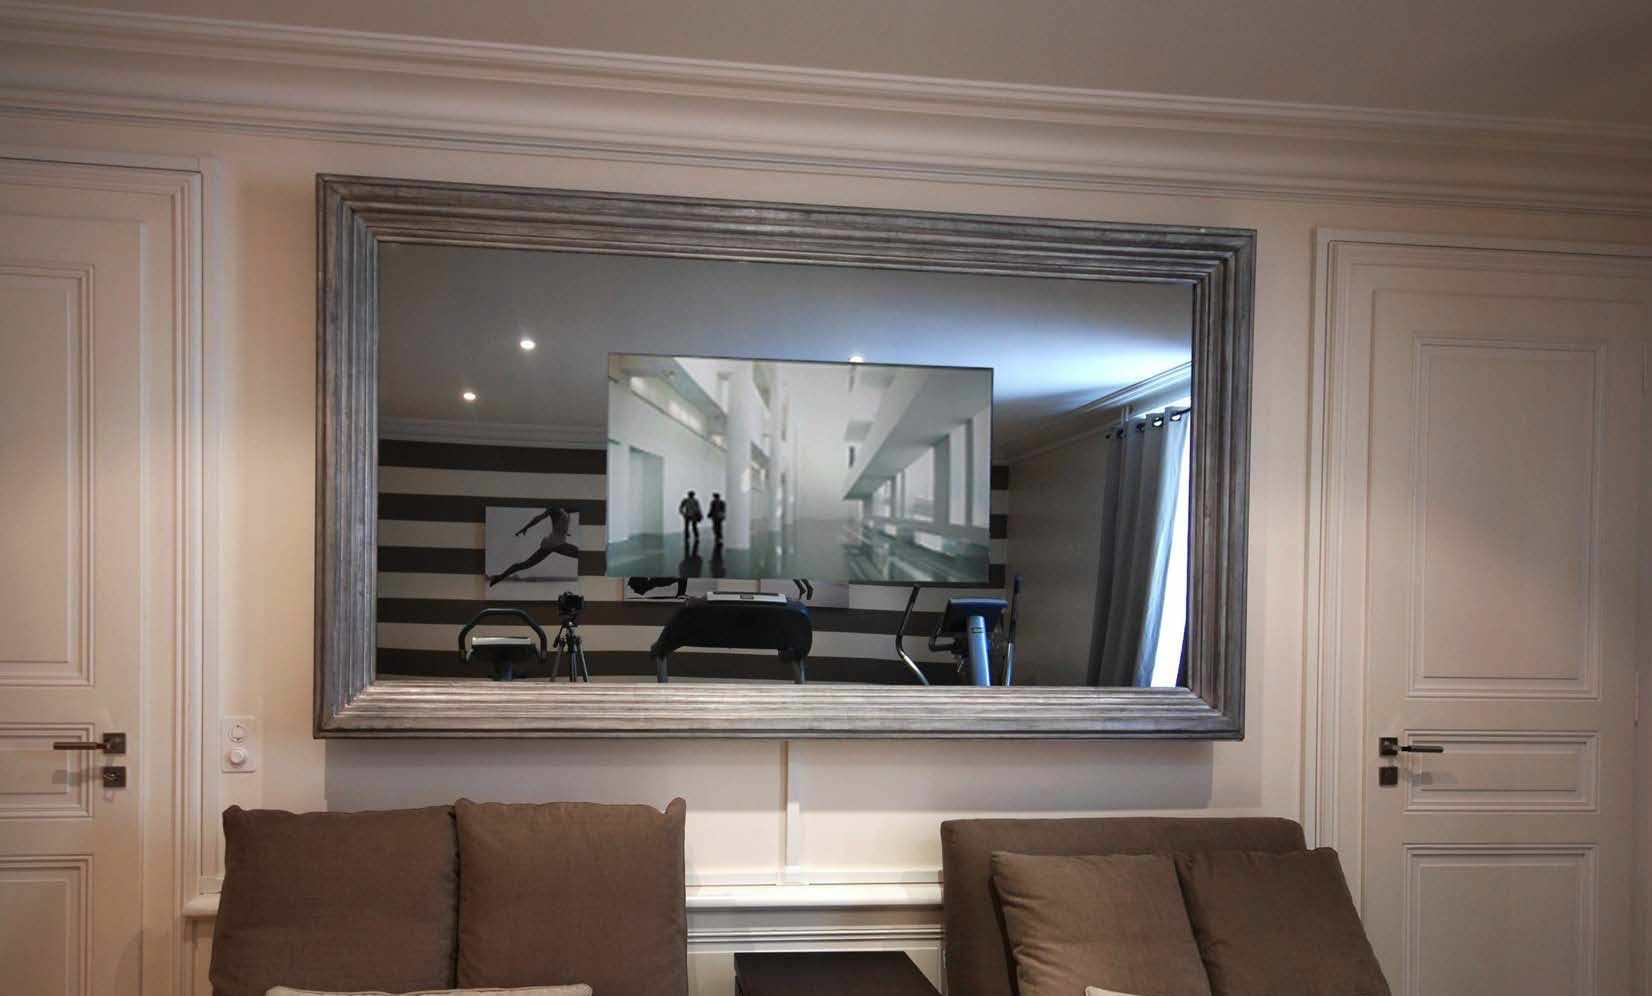 miroir rectangulaire salon id es de d coration